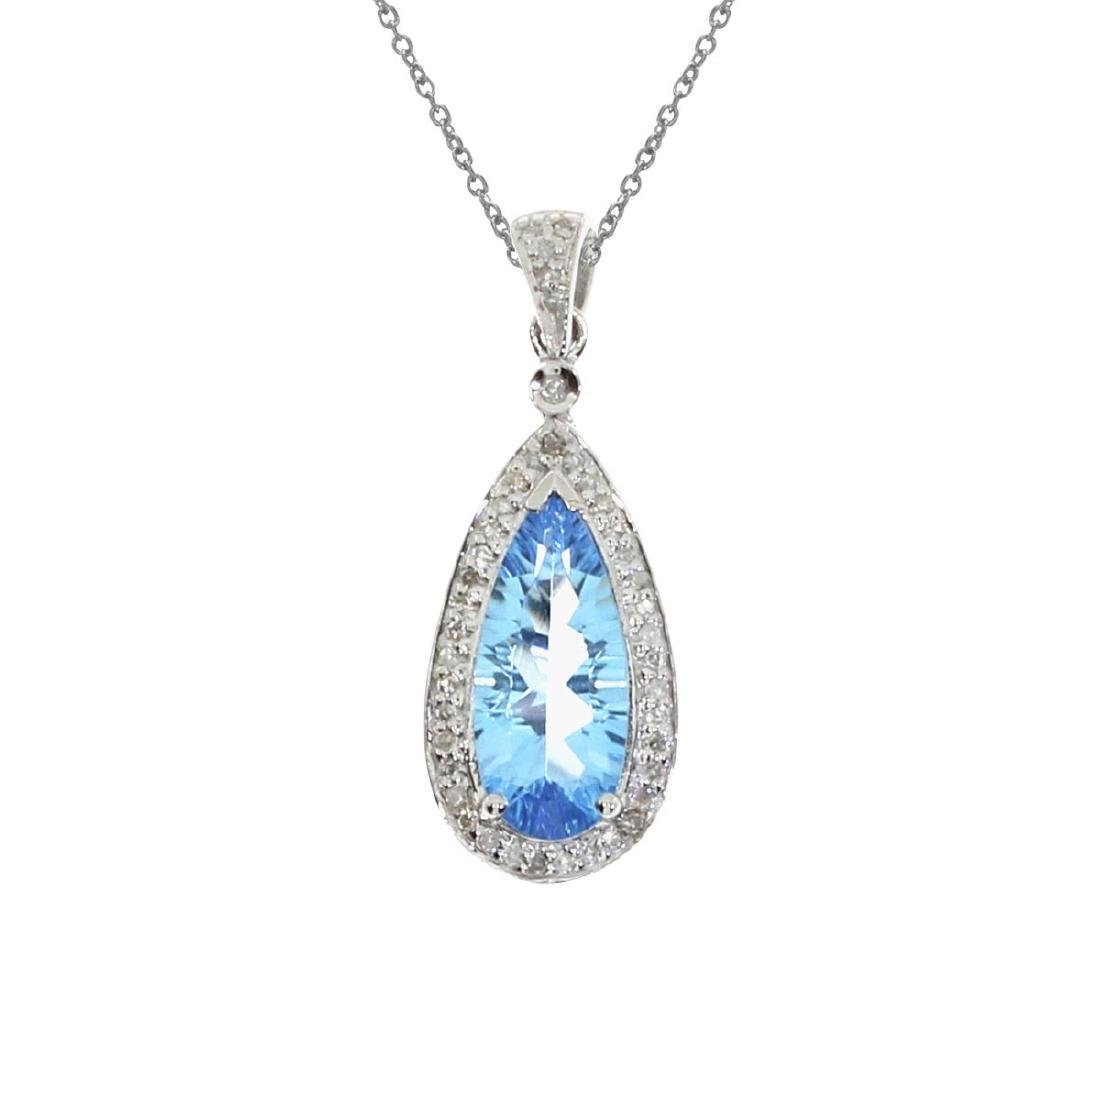 Certified 14k White Gold Blue Topaz Drop Pendant 2.73 C